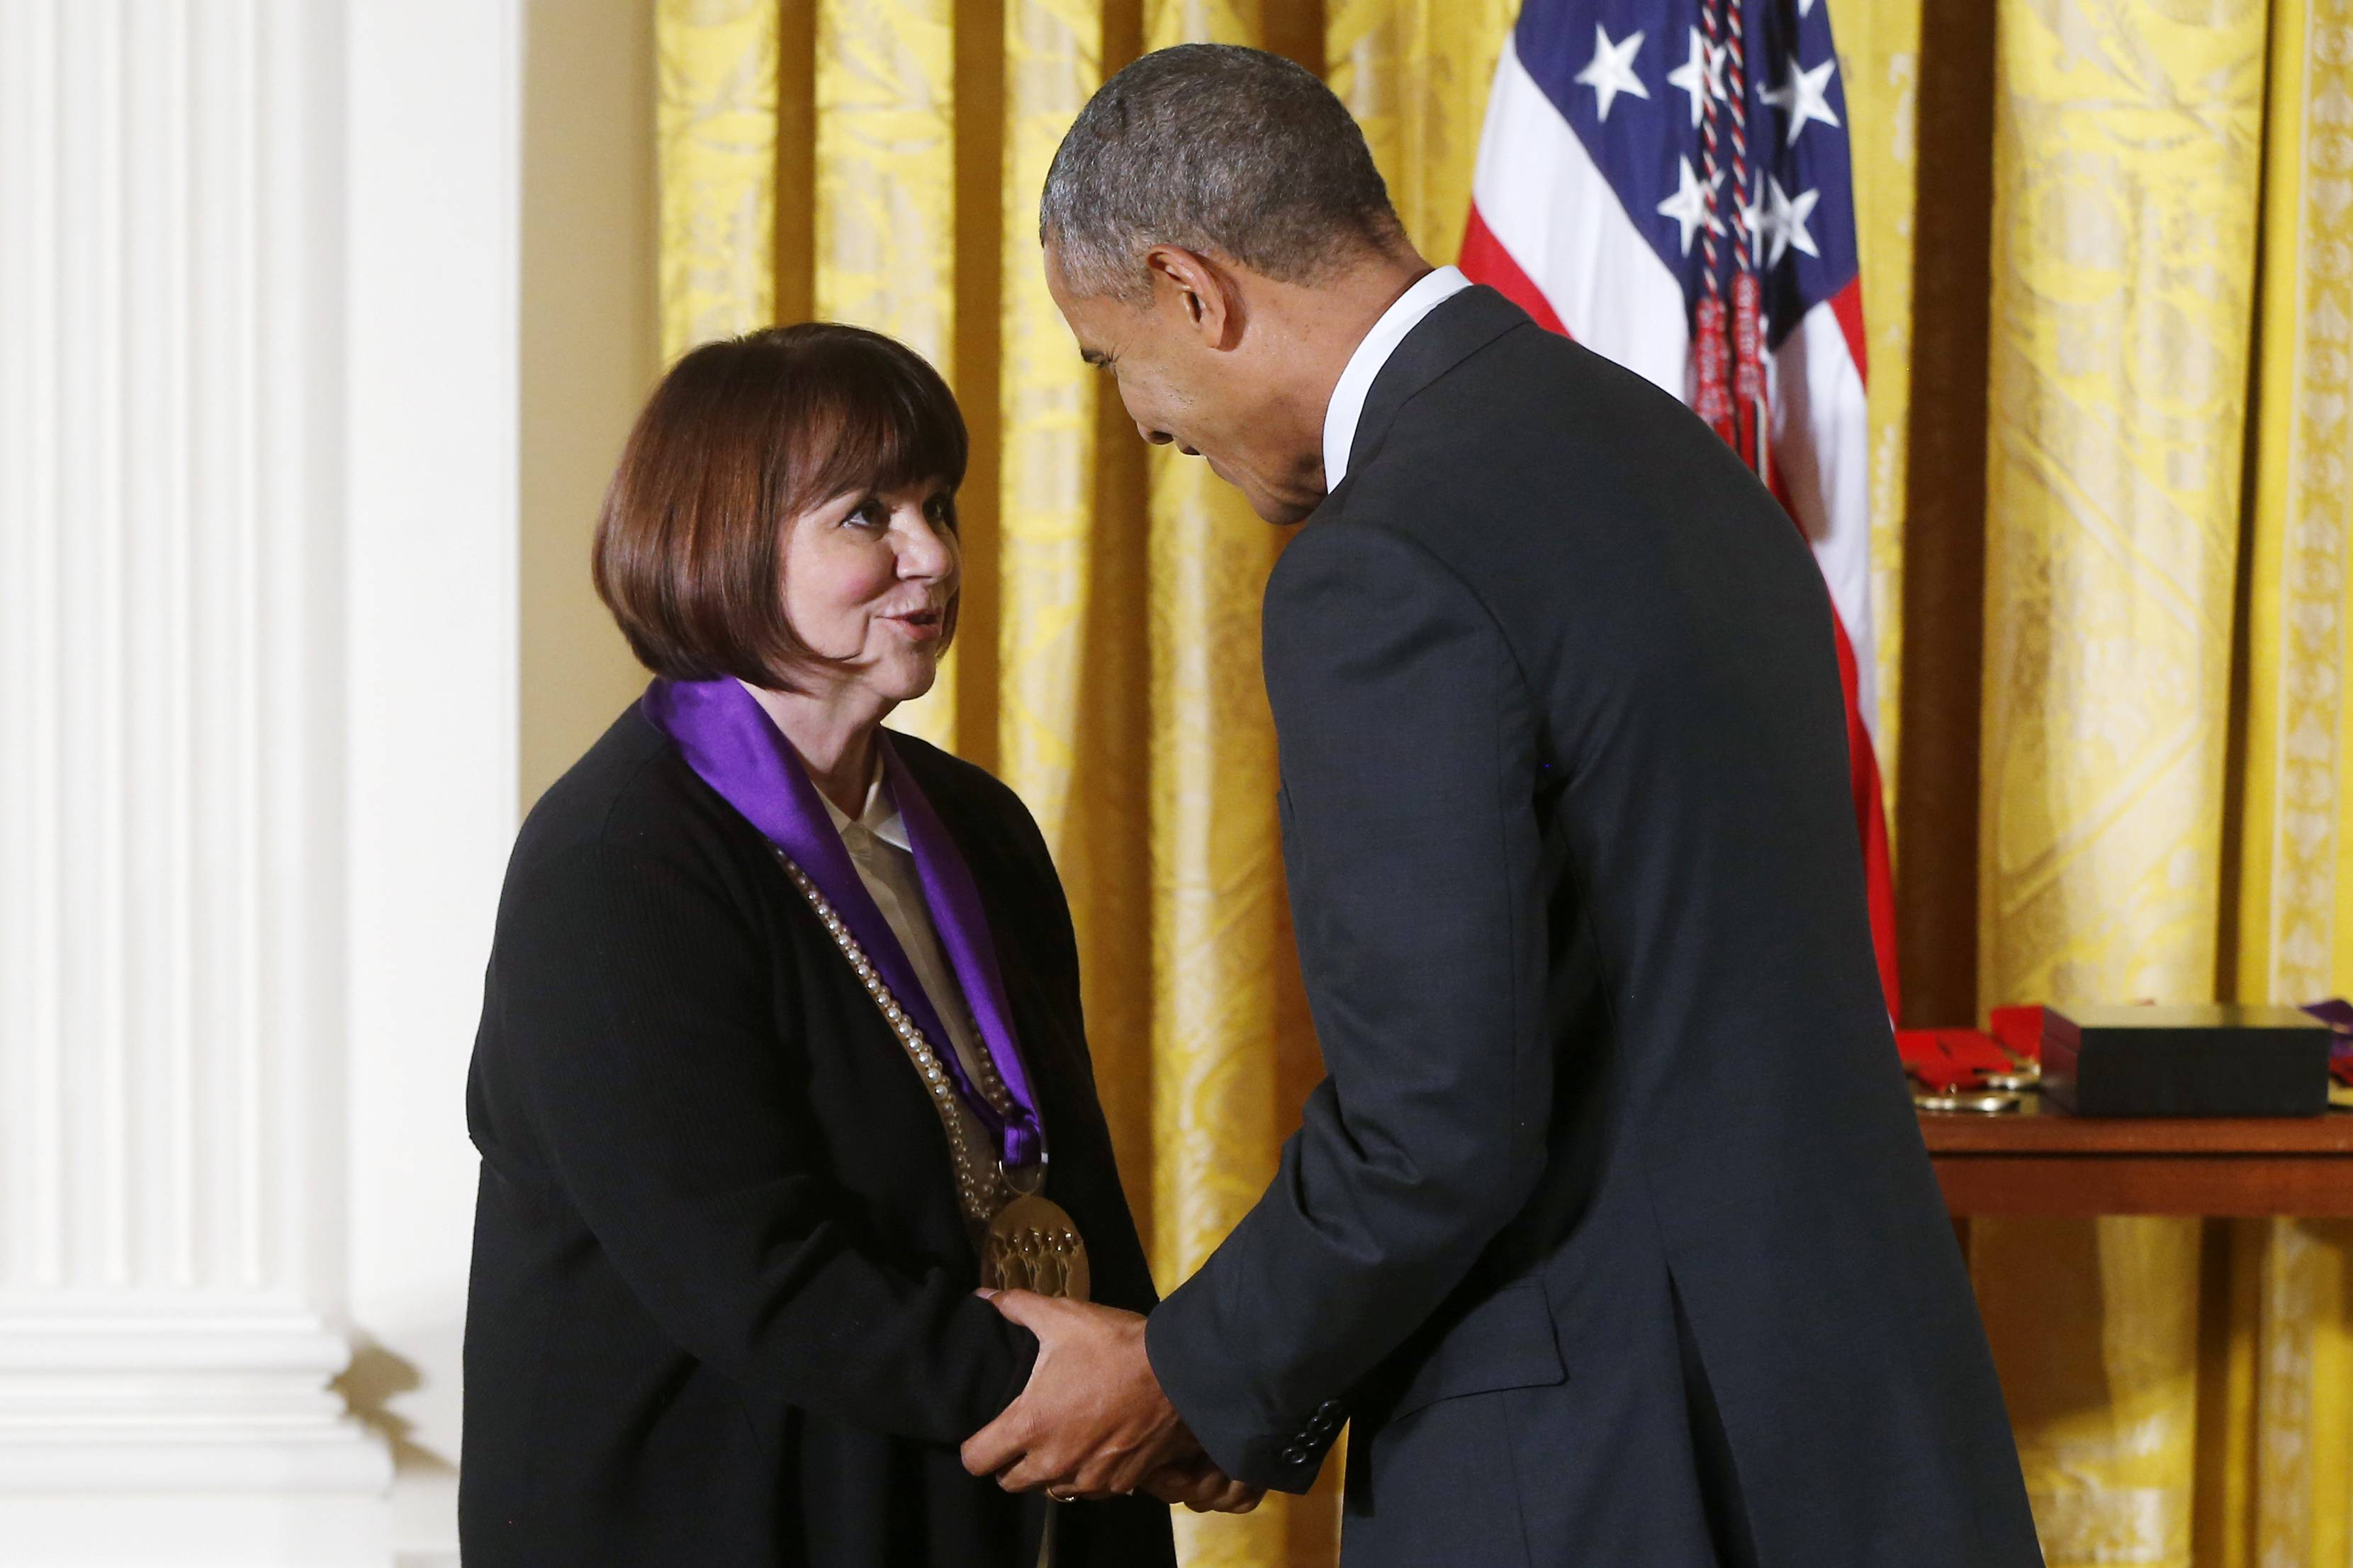 President Obama greets musician Linda Ronstadt in the East Room of the White House, where he presented her with a 2013 National Medal of Arts.